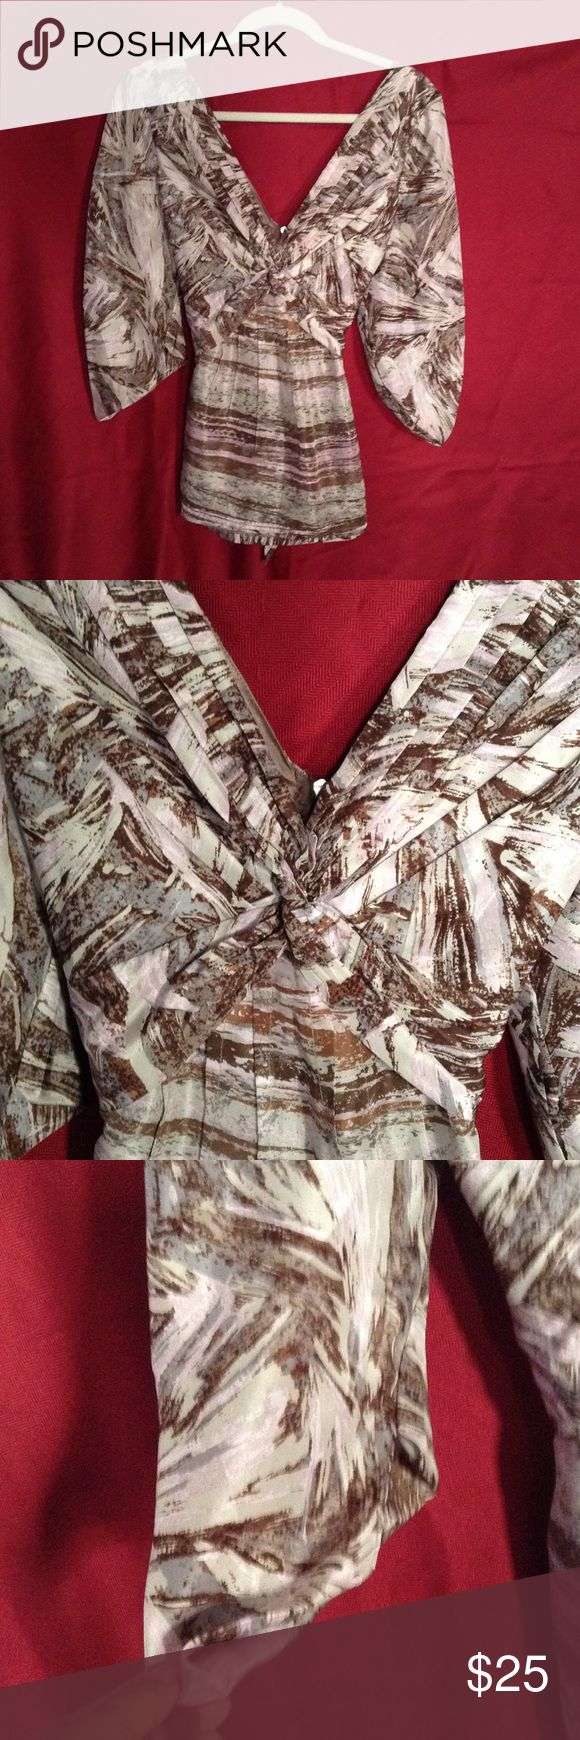 BCBGMAXAZRIA Top Excellent condition.  This beautiful top is a Large. BCBGMaxAzria Tops